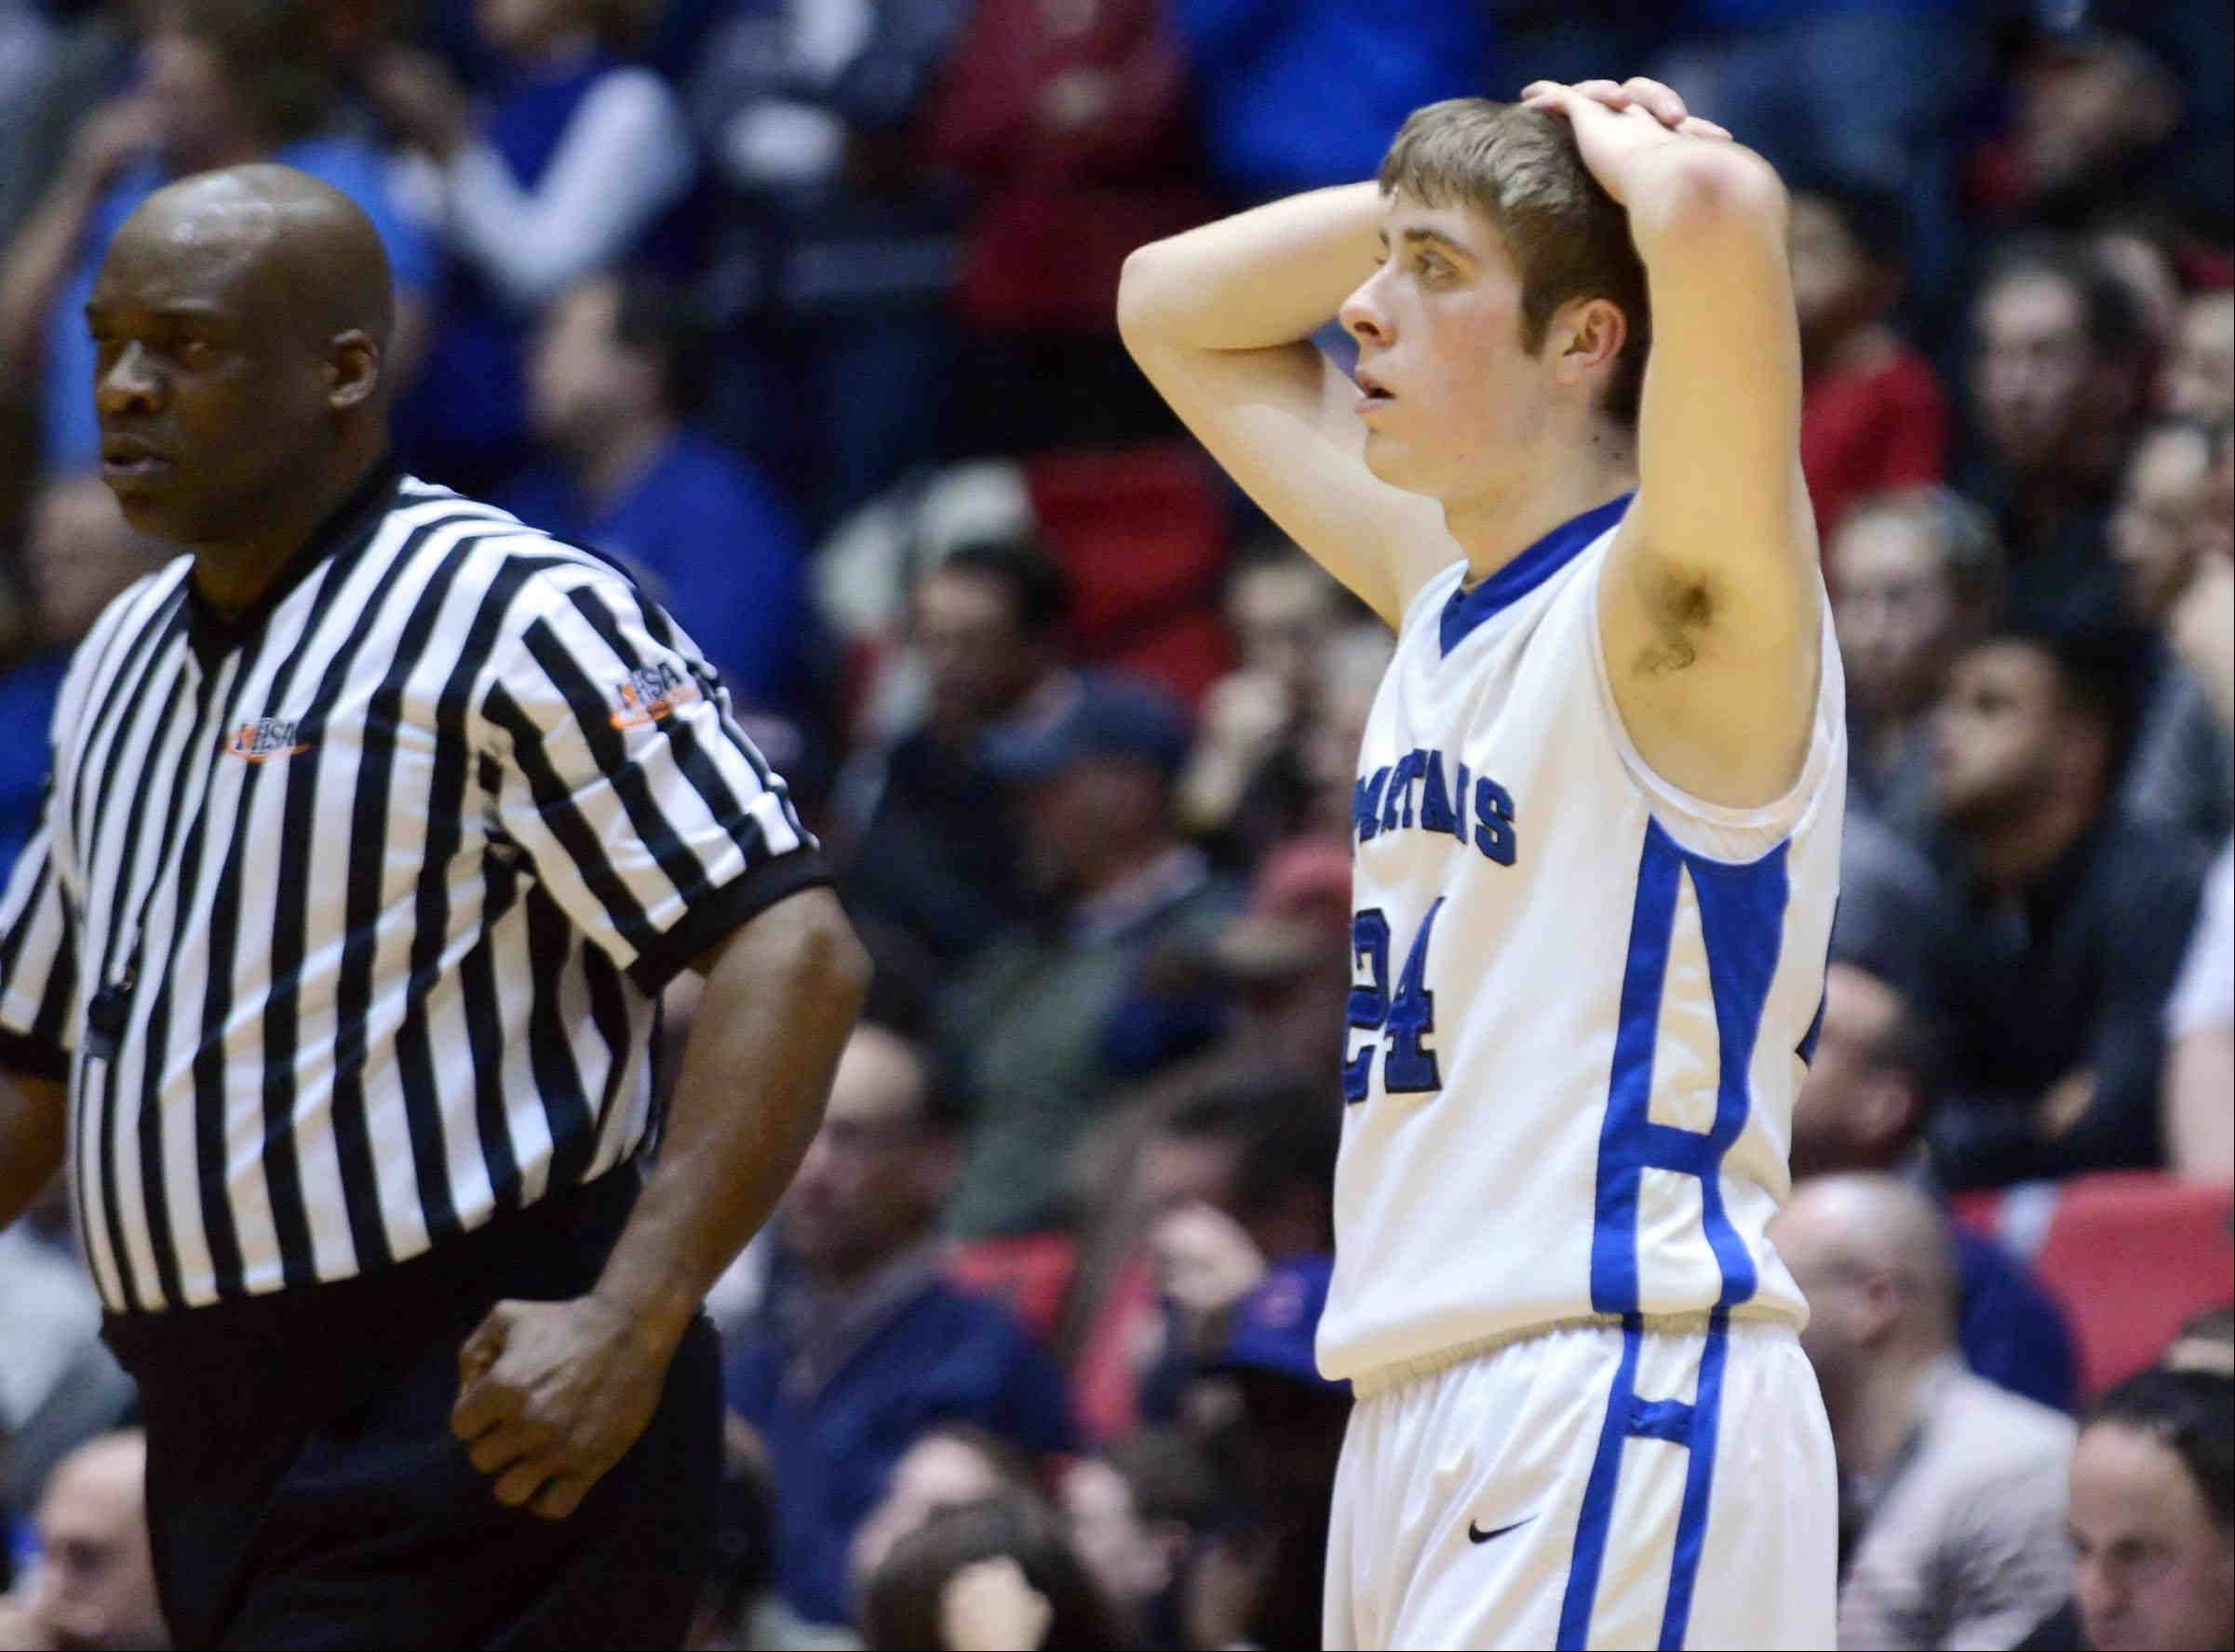 St. Francis� Matt Bonner reacts to committing his fifth foul near the end of the game against Bartonville Limestone Tuesday in the 3A Dekalb supersectional game at the Northern Illinois Convocation Center.